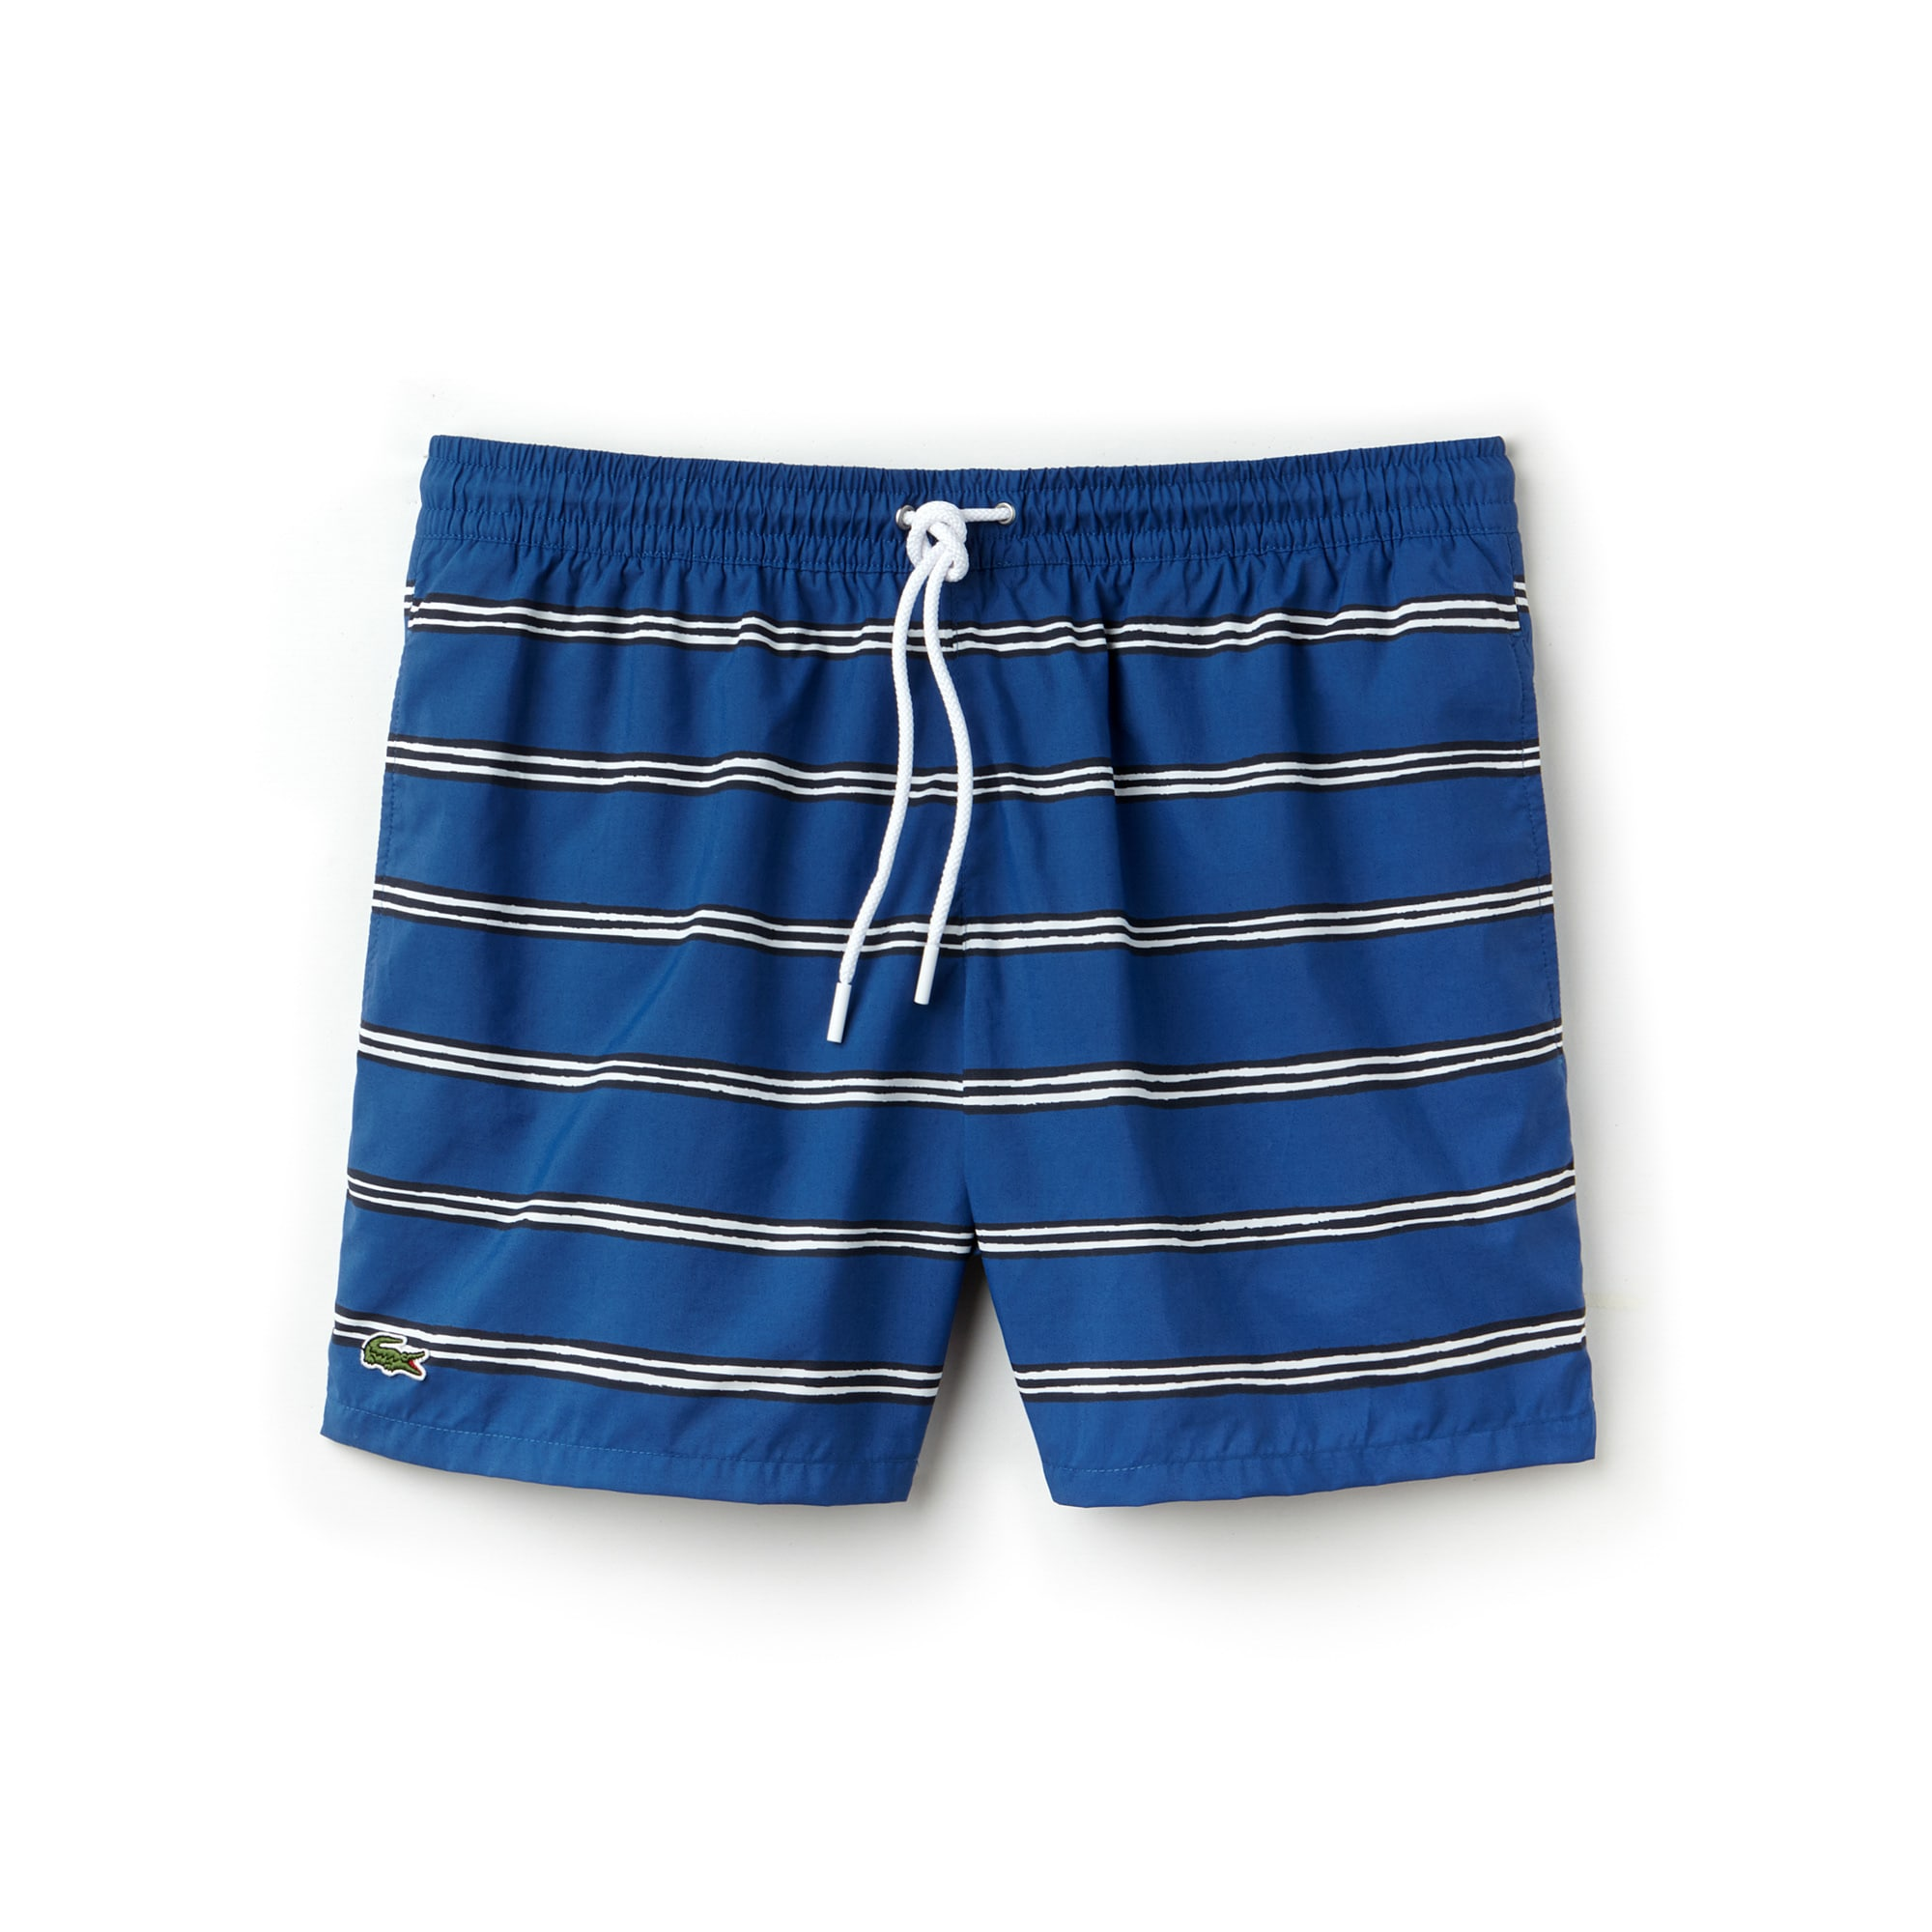 Men's Striped Canvas Swimming Trunks